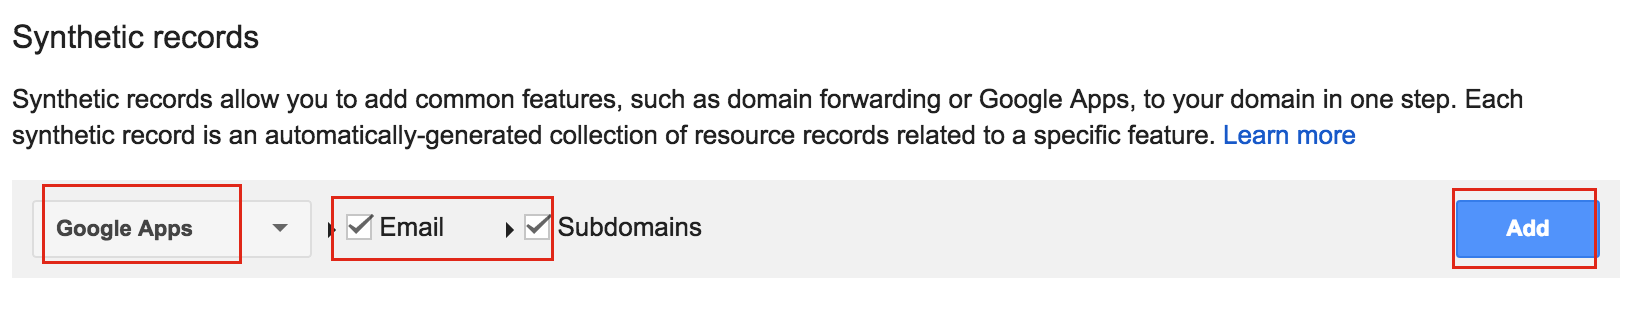 Google-Domains-Synthetic-Records